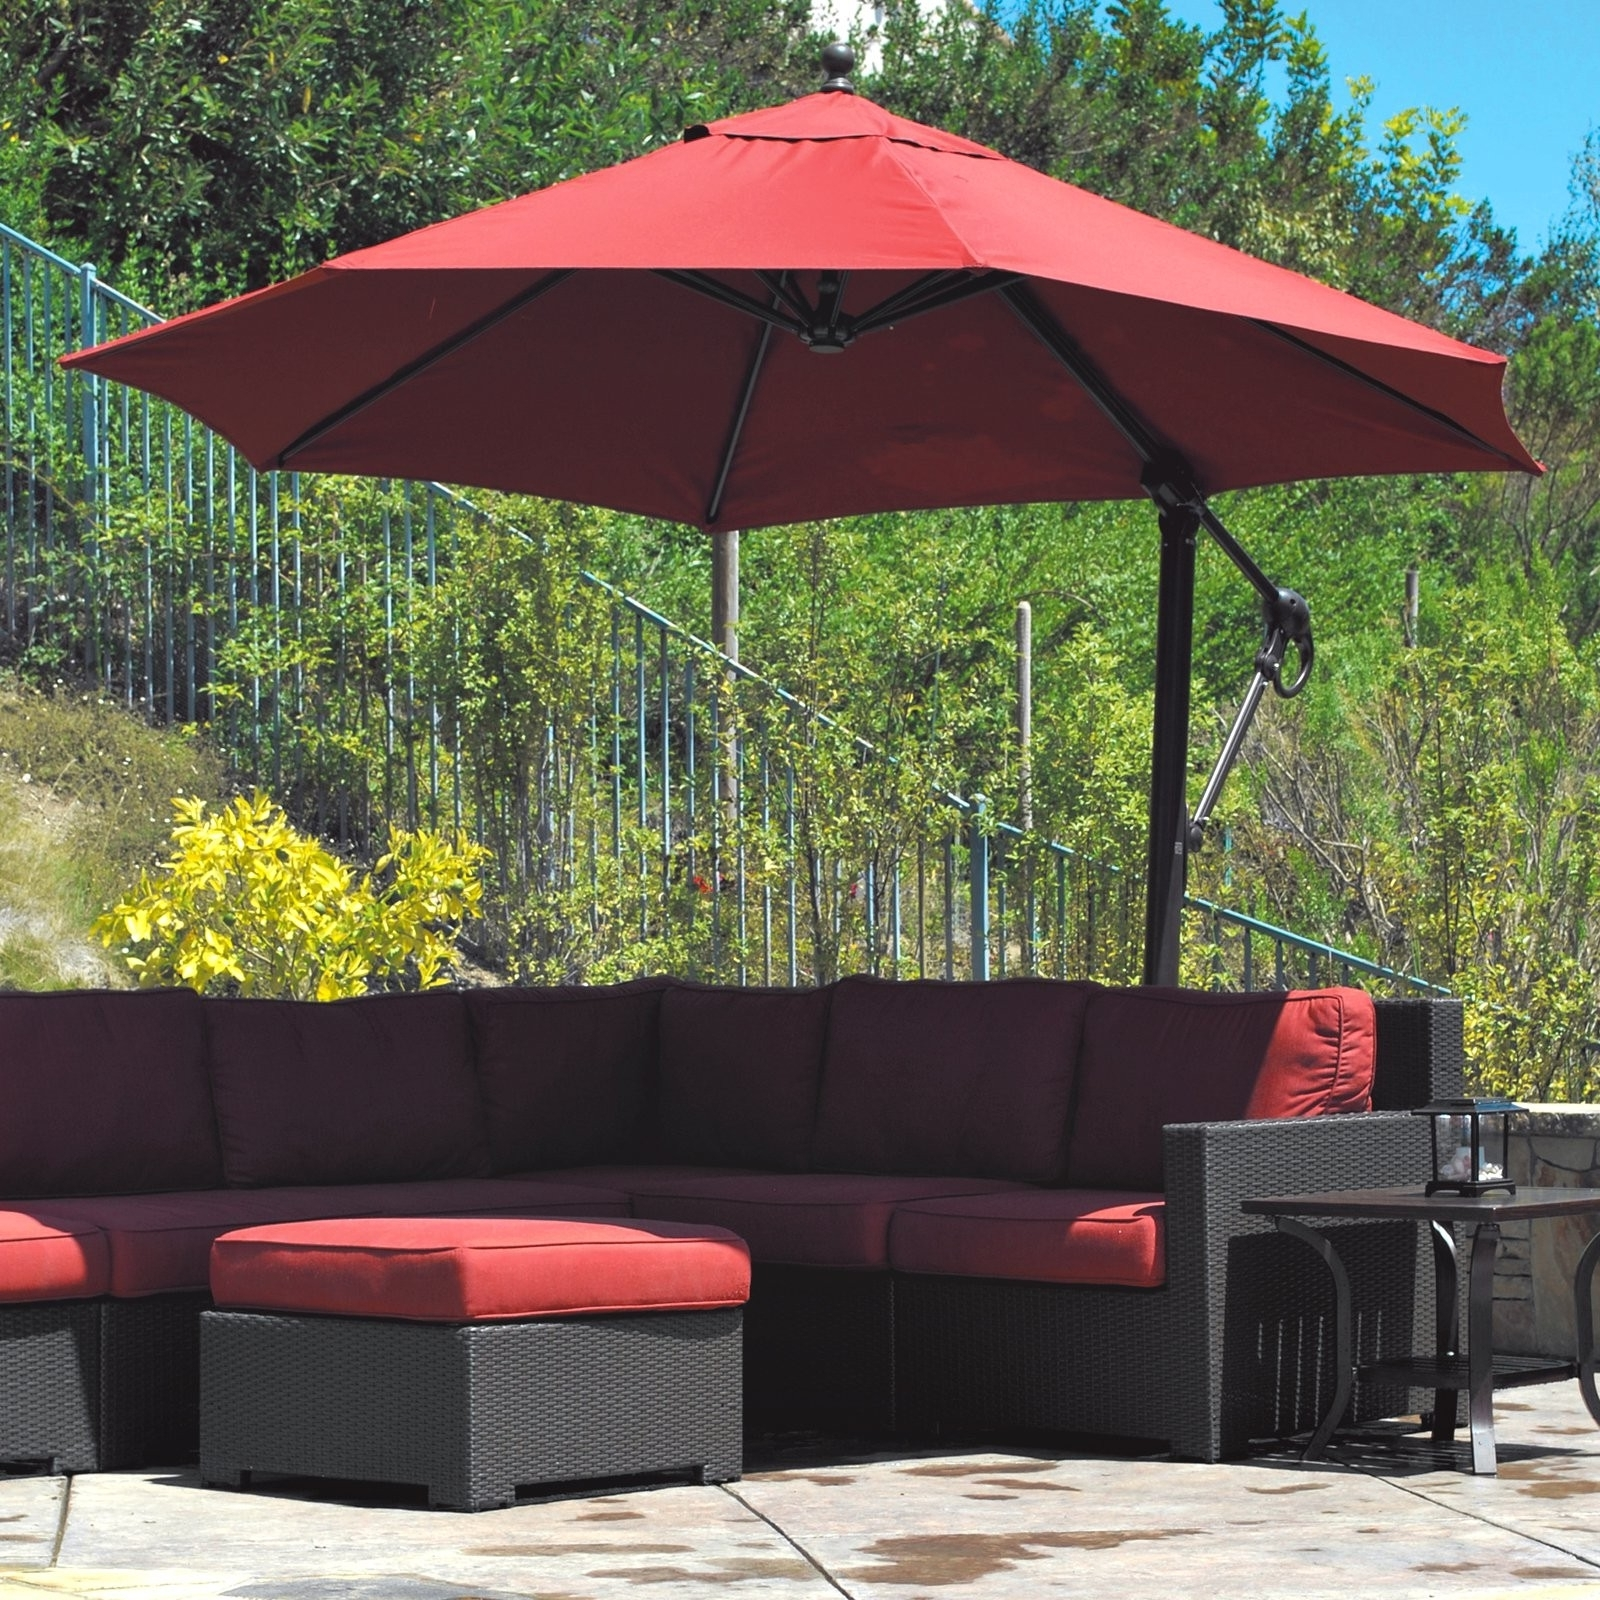 Latest Red Sunbrella Patio Umbrellas Pertaining To Sunbrella Patio Umbrella Lovely Outdoor Ft Patio Umbrella Outdoor (Gallery 7 of 20)